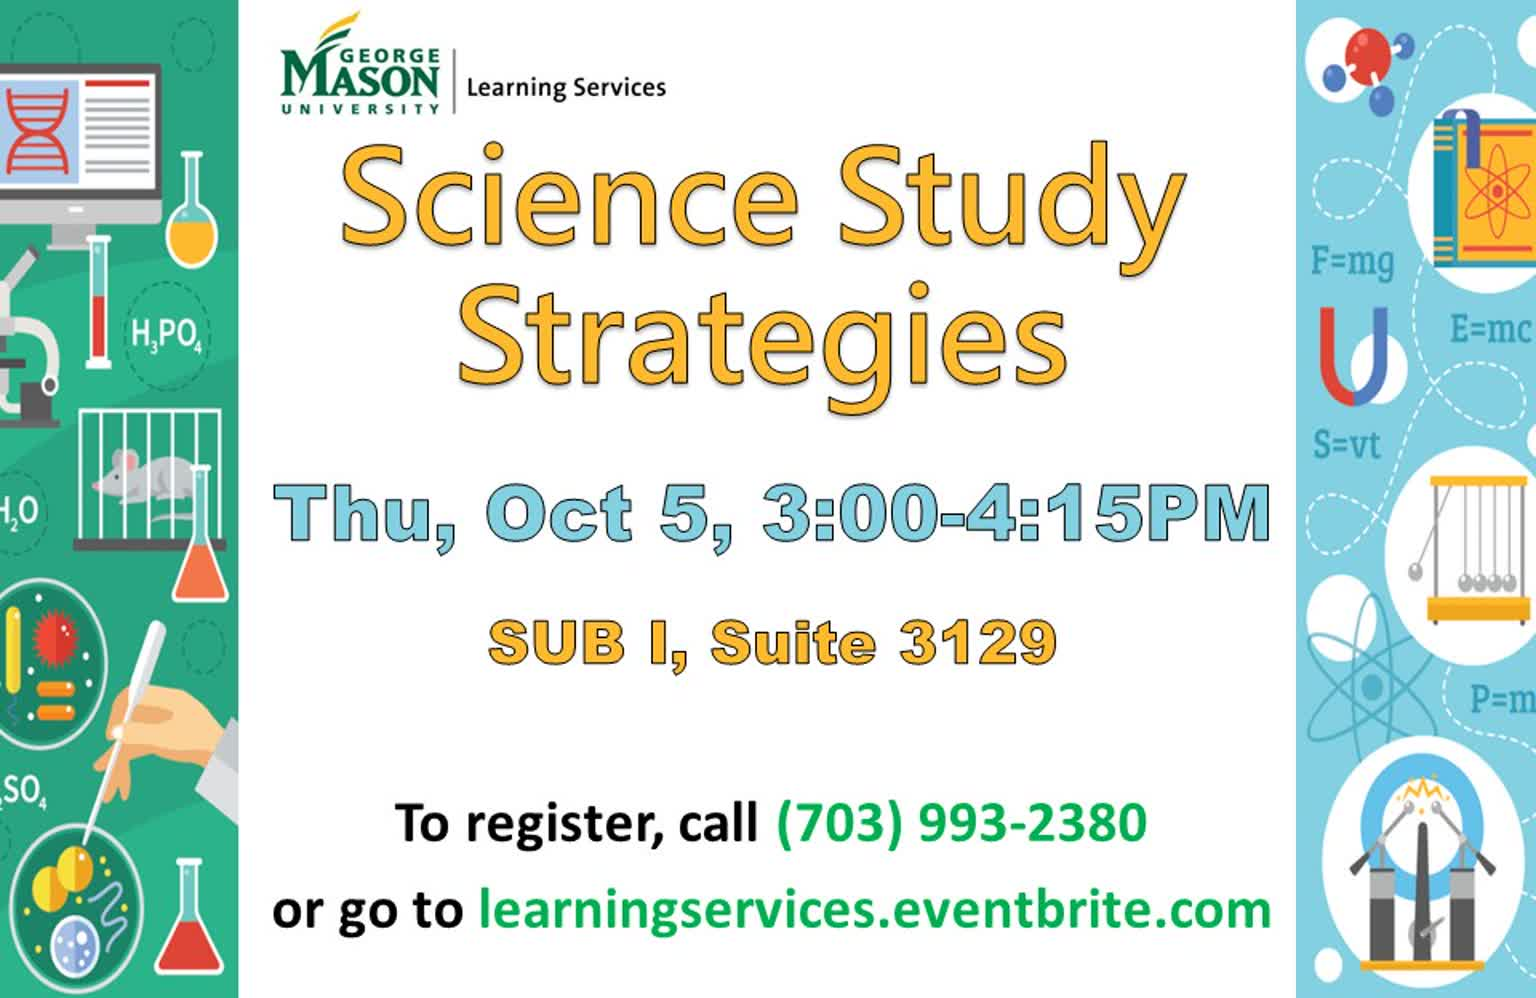 Information regarding Science Study Strategies is as follows Start date (when you would like your content to be posted) is September 18 2017 and End Date  (when you would like your content to be removed from the screens) is October 06 2017 and File is Browse and Email is chahn2@gmu.edu and Name is Crystal Hahn and File Name is Science-Strategies-Fall-2017_comp.jpg and Group Name is Learning Services and Panel for your ad to be displayed is Main and Affiliation is Mason Department and Name of Ad/Event is Science Study Strategies and